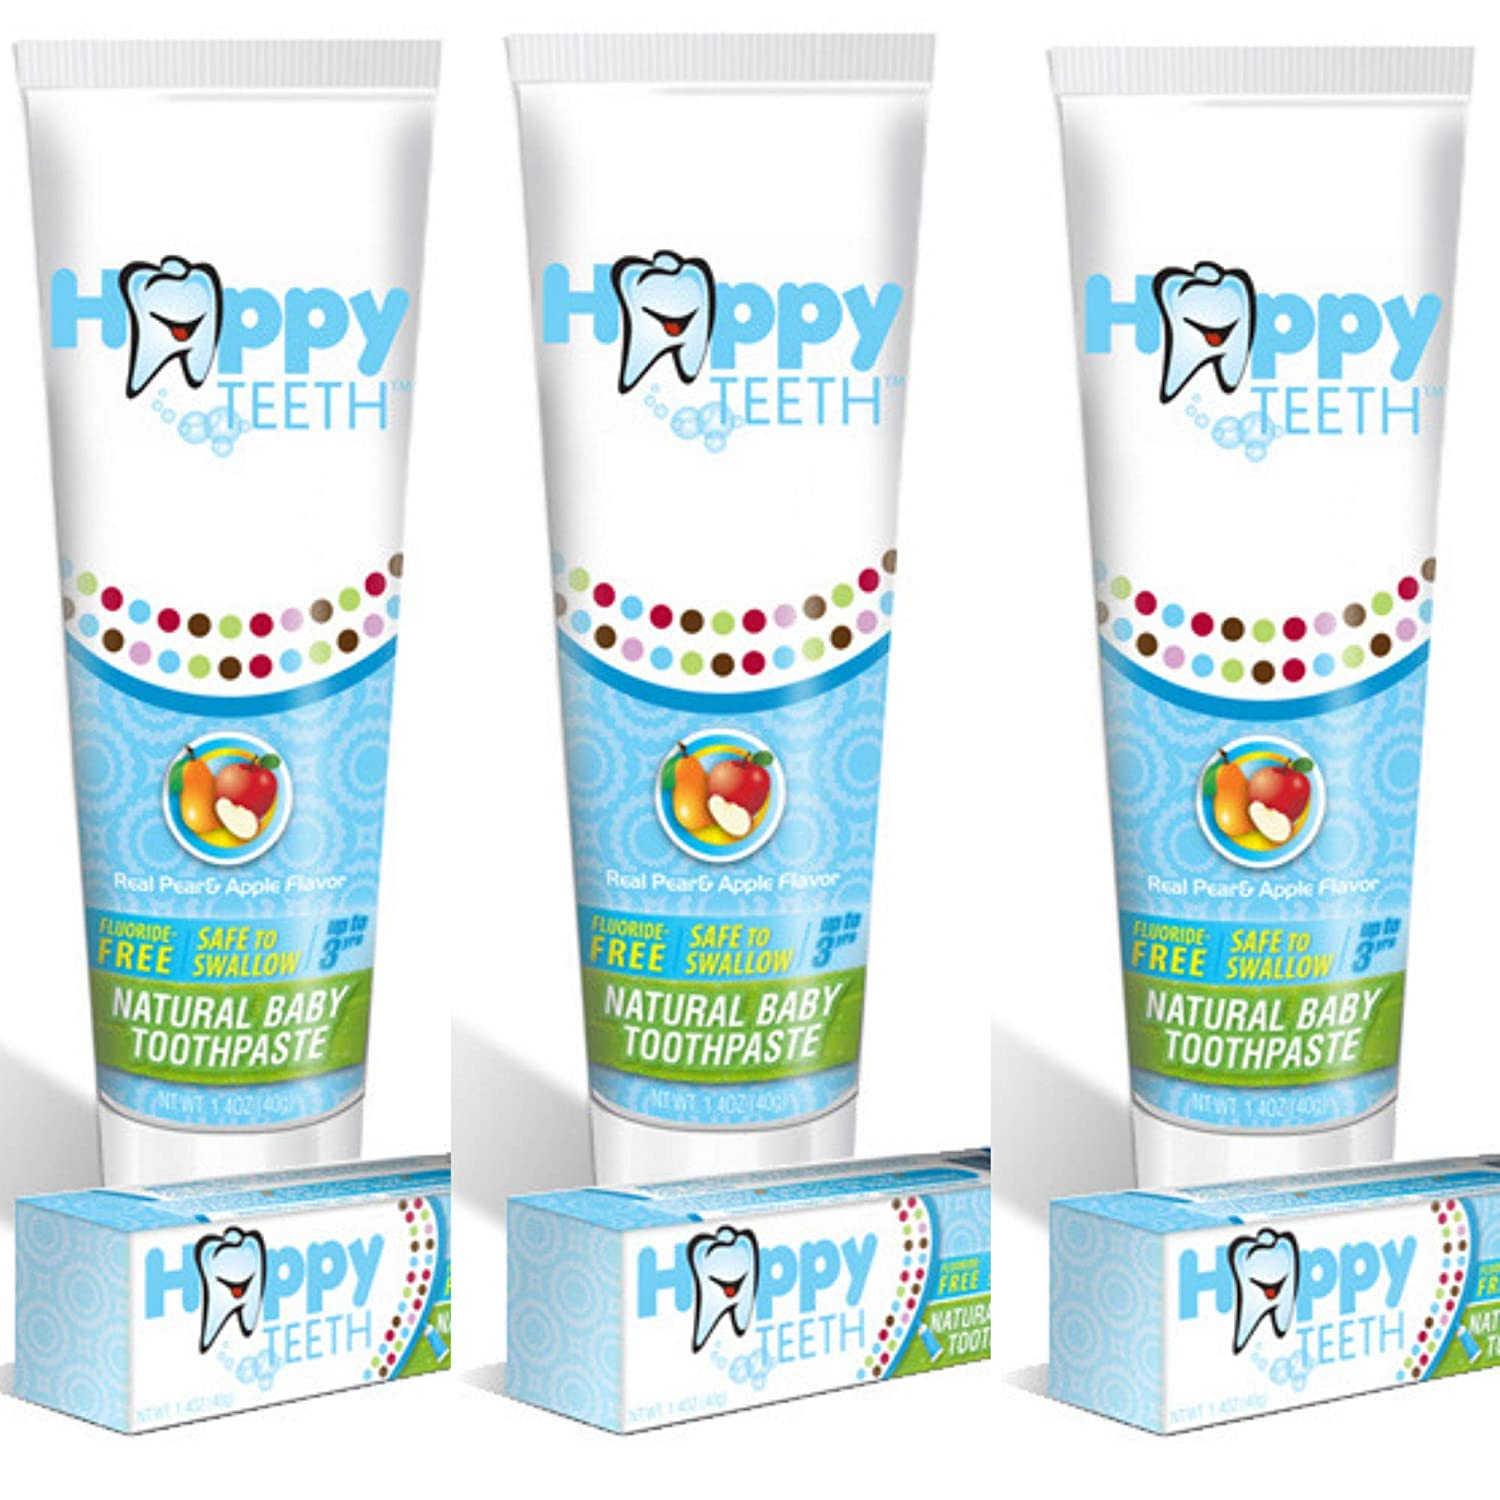 Happy Teeth Baby Toothpaste, Fluoride Free and SLS Free, Natural Pear Apple Flavor, No Preservatives, Safe to Swallow, Best Baby Toothpaste for Kids 3 and Younger